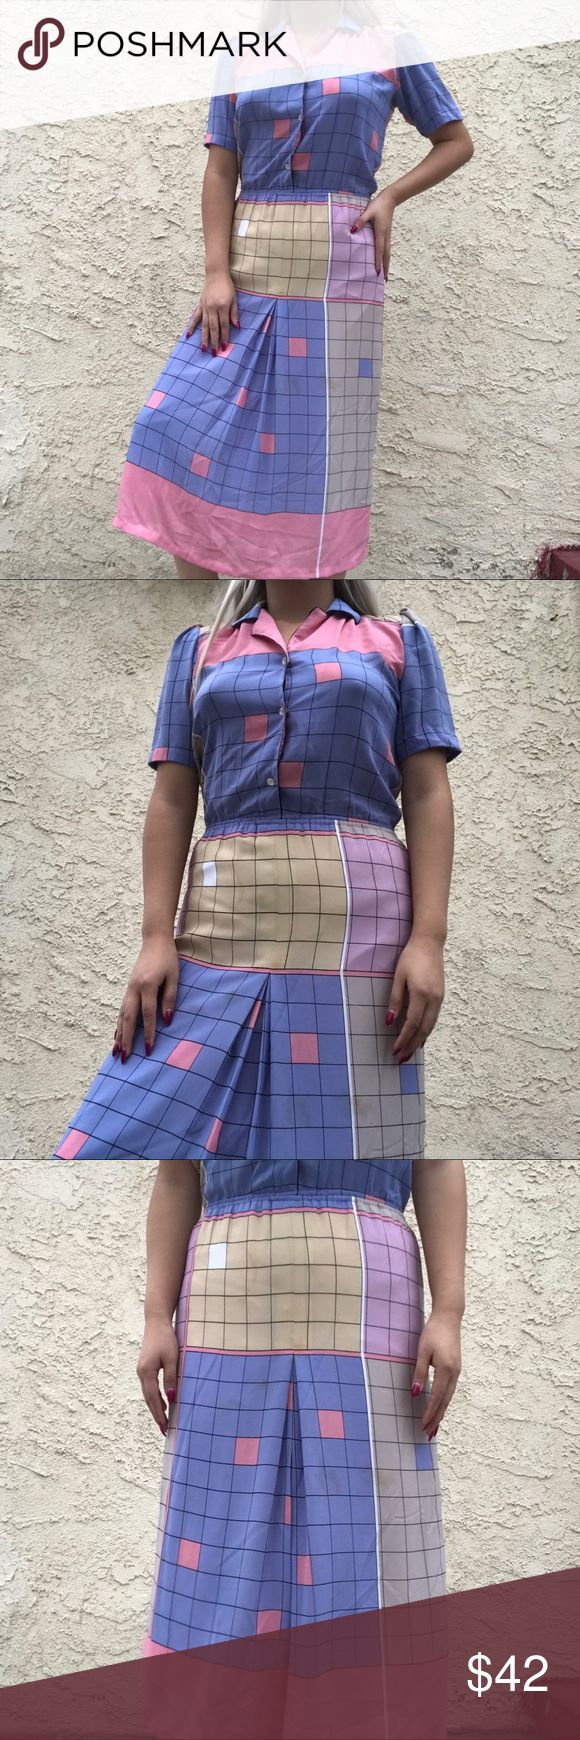 """Vintage grid pastel dress How is this dress even real?! 😩💗 gorgeous vintage pastel colored grid dress 😍 no label on it. Would best fit small or medium The dress is a bit dirty as you can see in the 3rd picture of the skirt area but it isn't very noticeable and can easily be dry cleaned! Length of dress is 46"""" Waist is 26"""" and can stretch to fit a 29"""" conformably. Shirt part is 16"""" long Skirt part is 29"""" long Dresses Midi"""